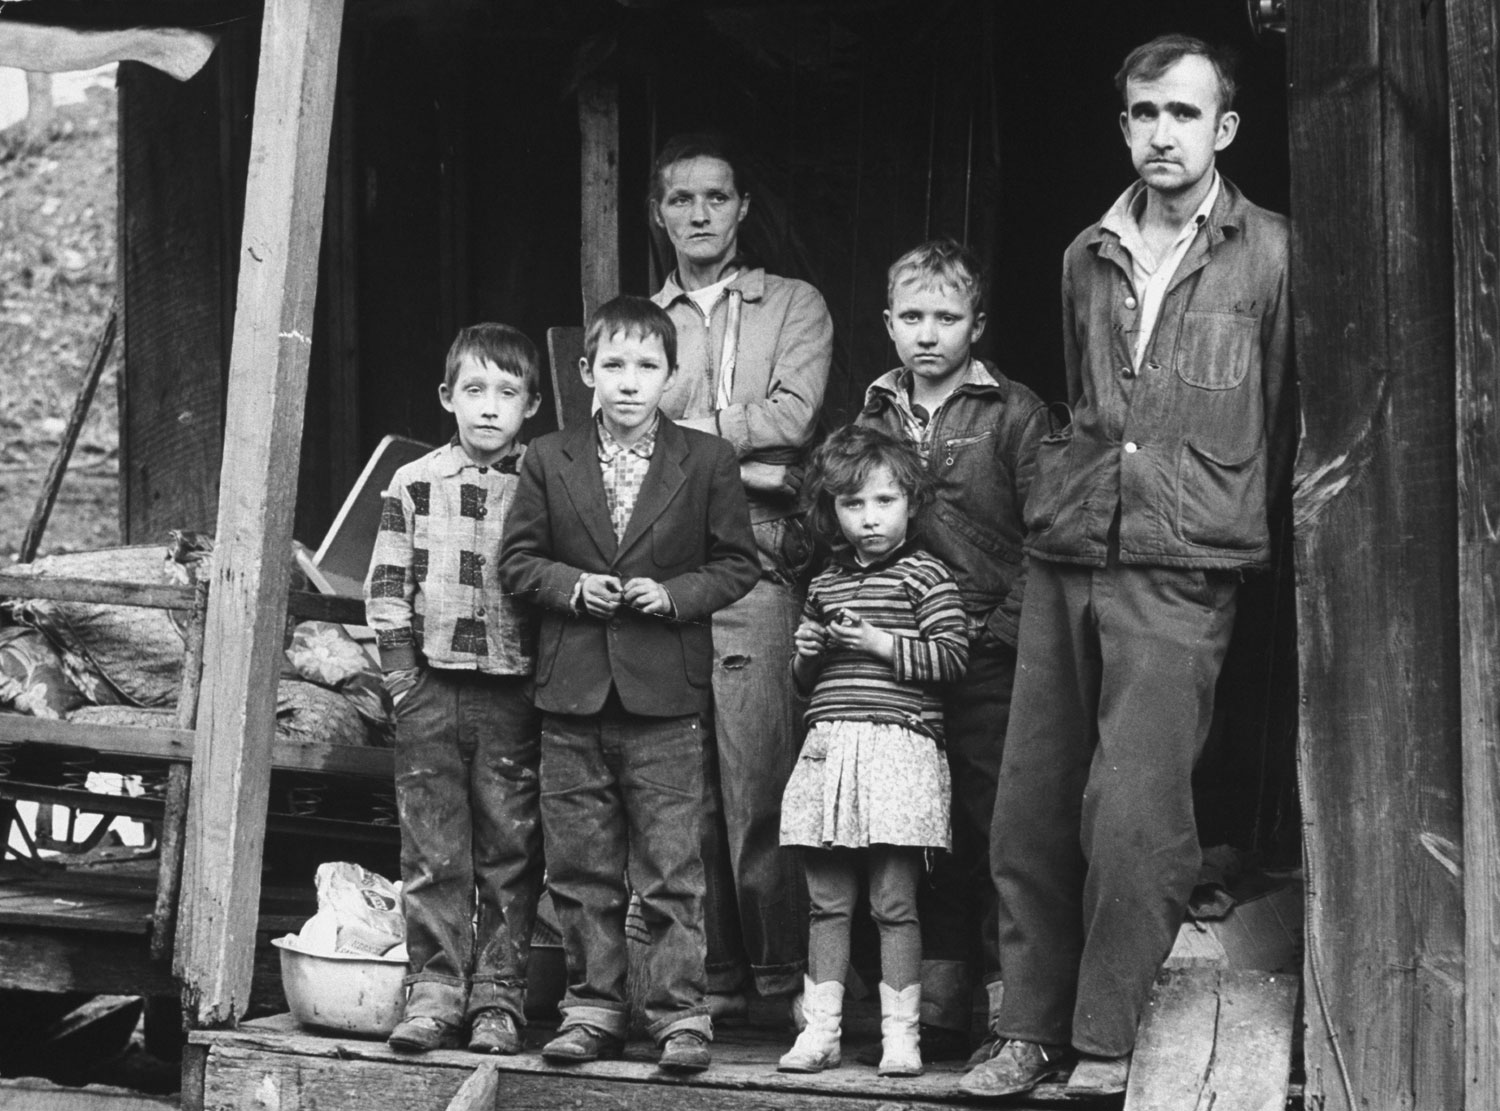 appalachian poverty essay Essay about appalachia culture 1522 words 7 pages many people have different views on what appalachia is, i grew up thinking that appalachia meant people were dirty, poor, illiterate, inbreed and we also called them mountain people.